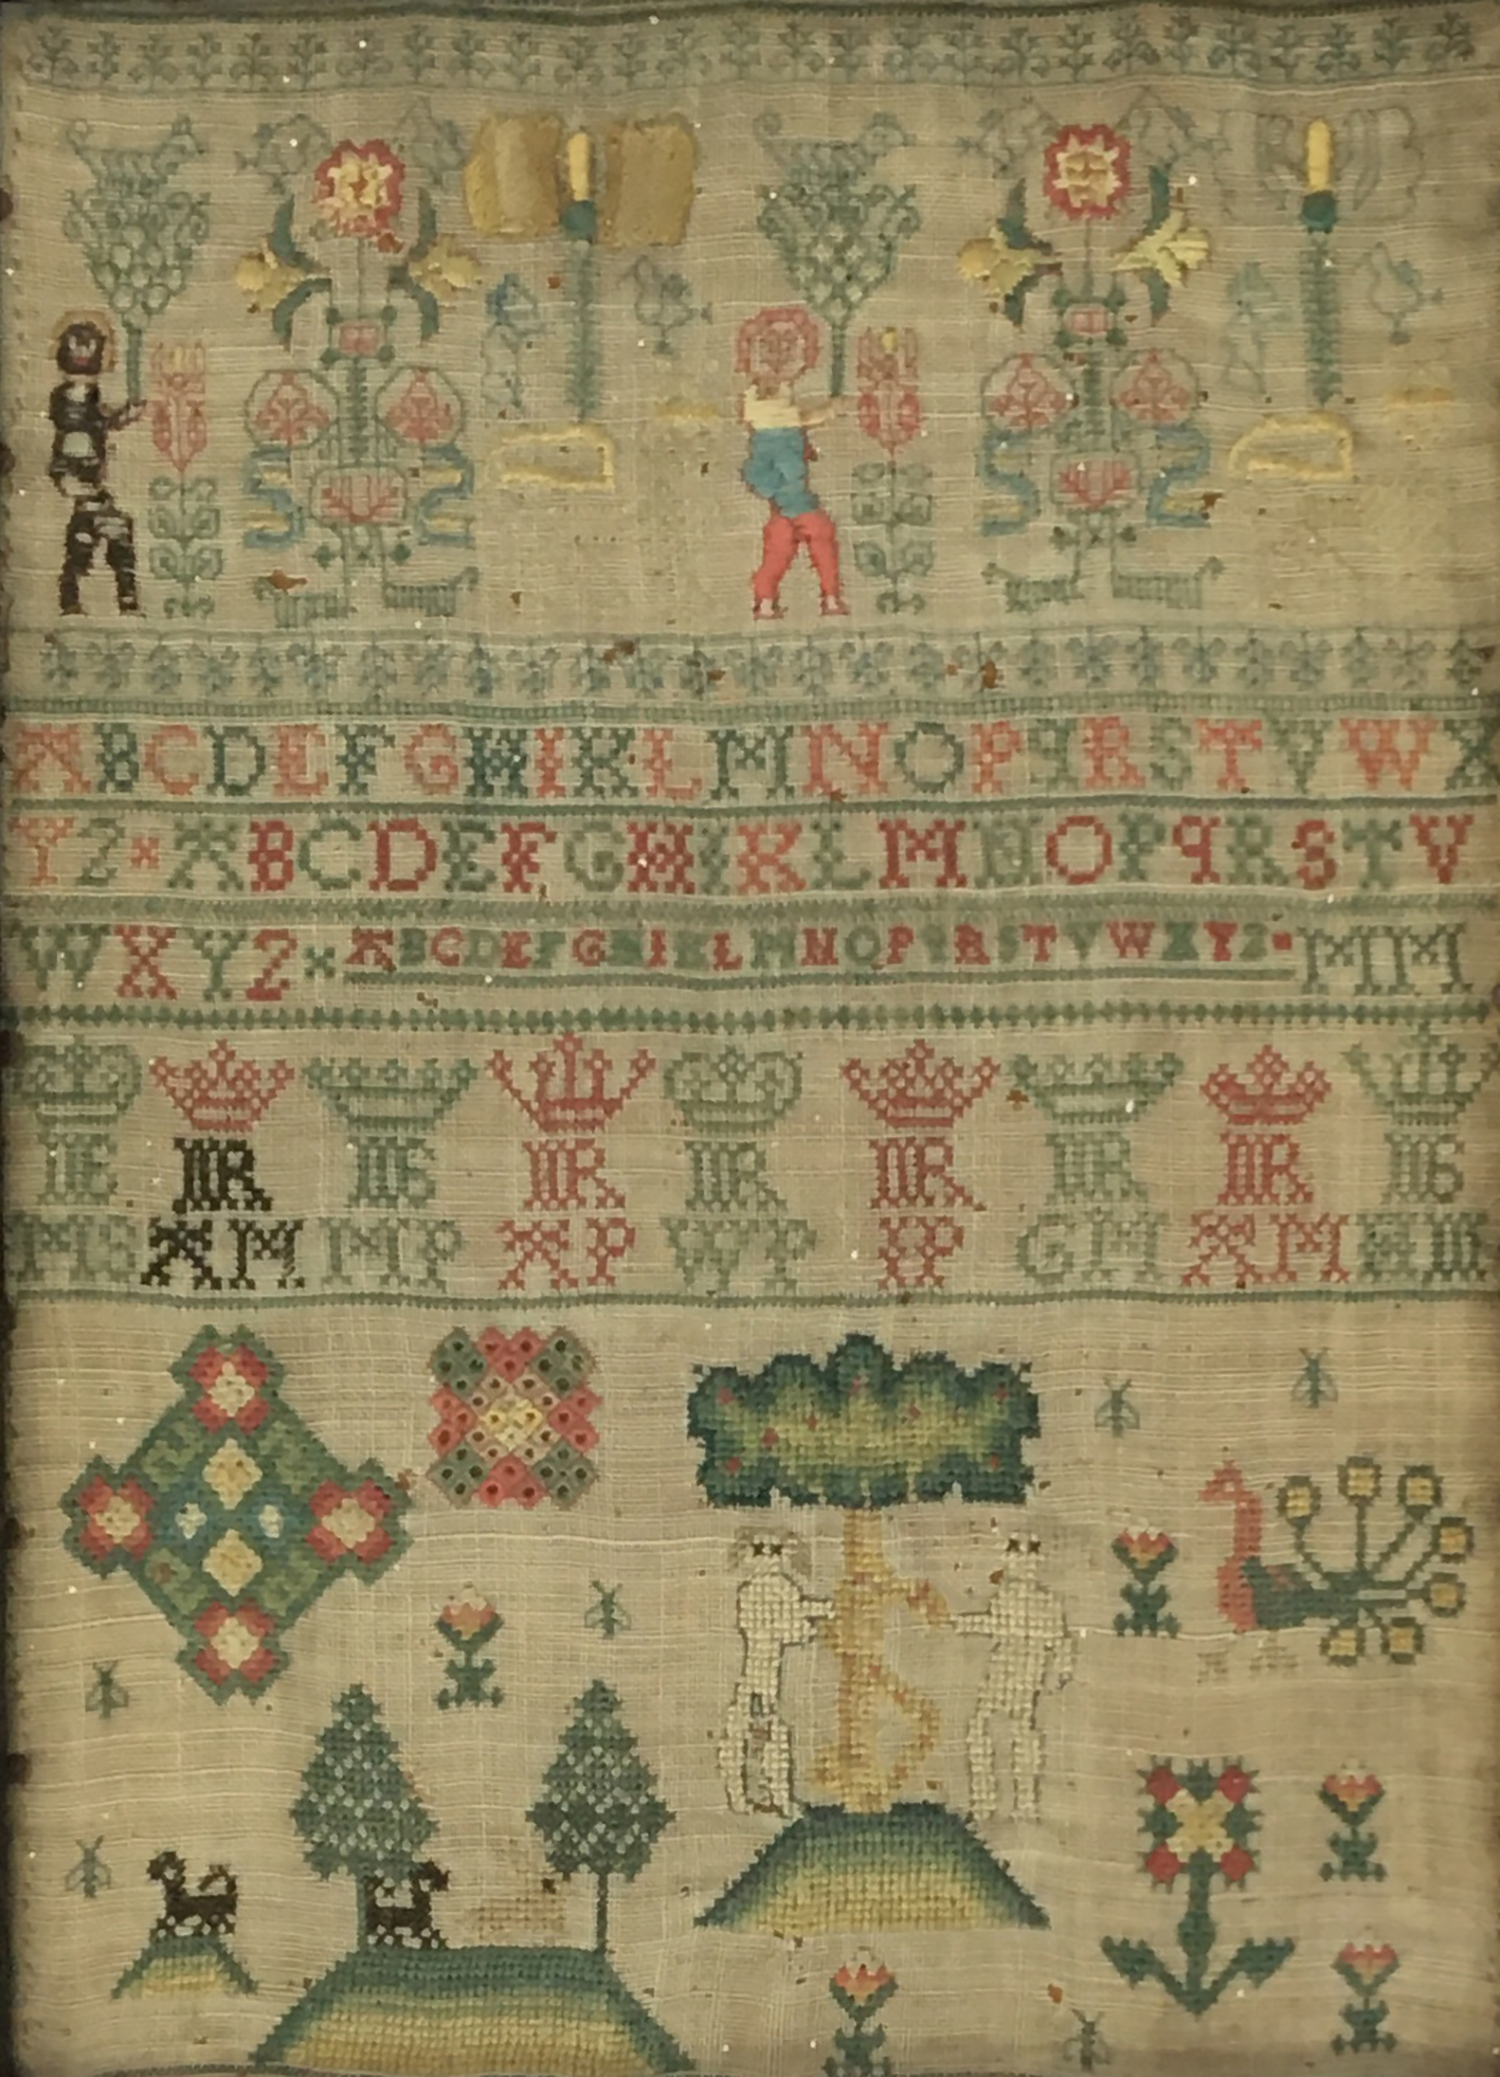 An early alphabet sampler, also worked with trees, animals, and figures, 30.5 x 22cm